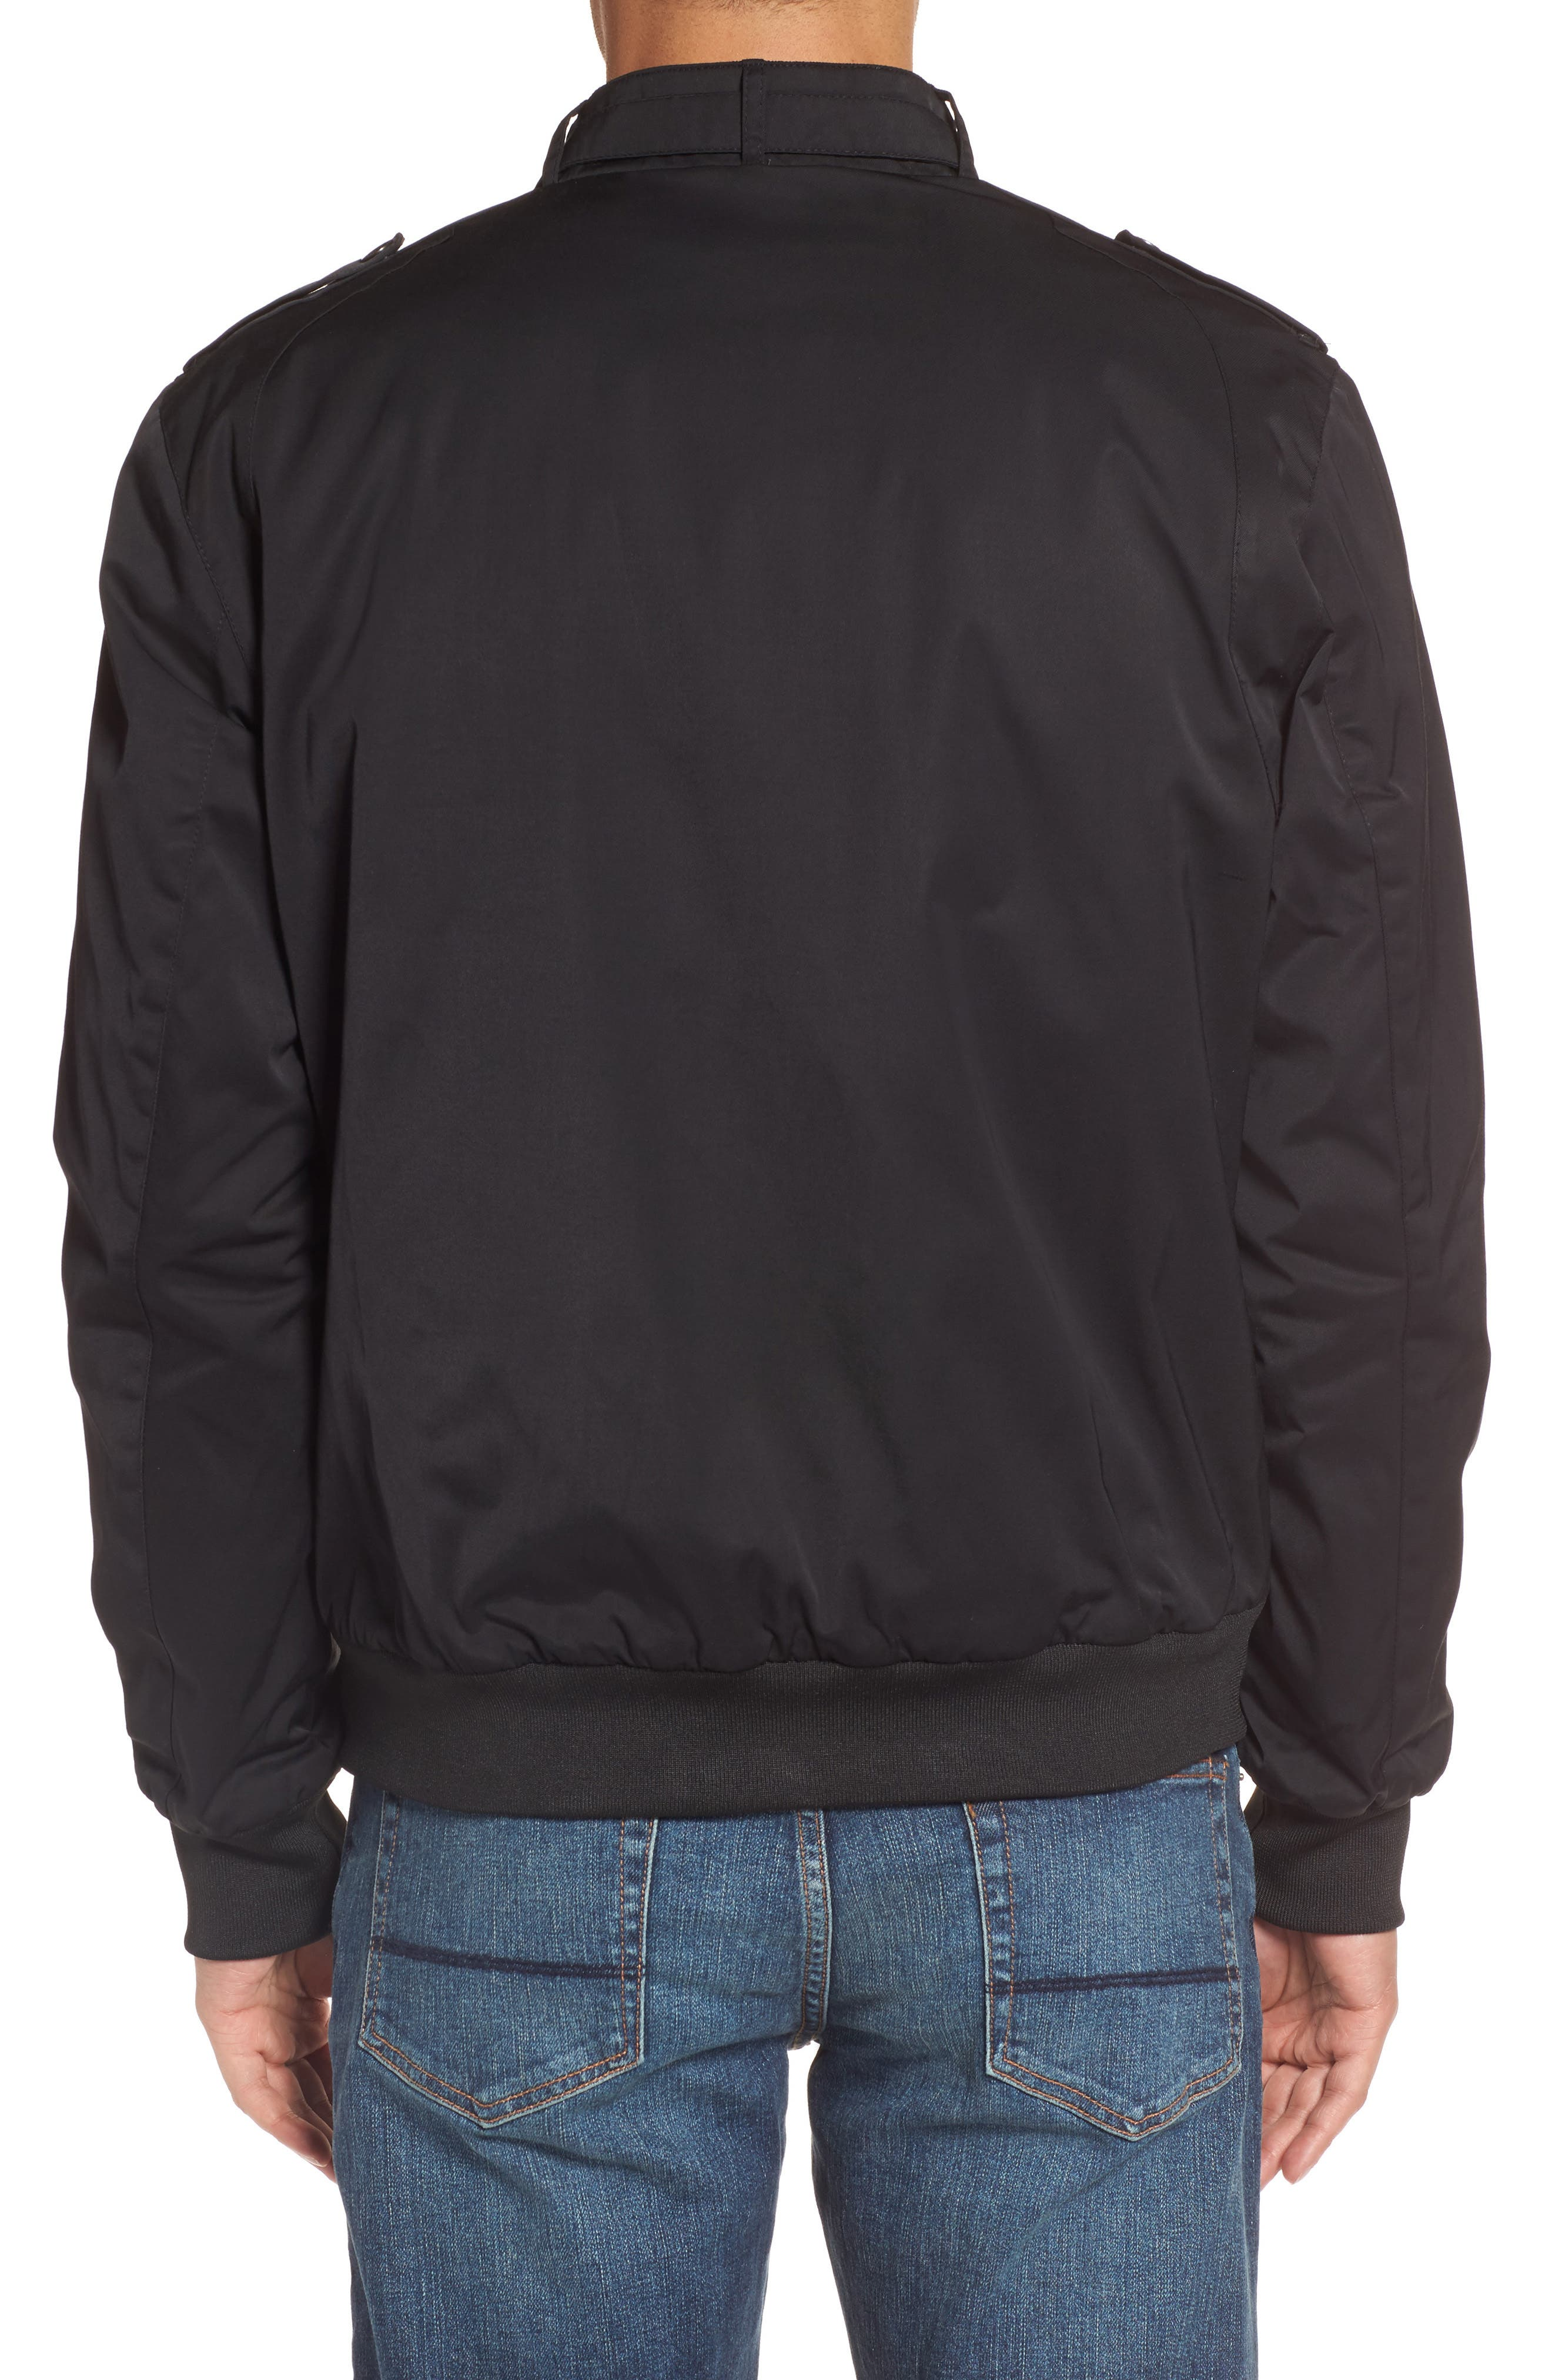 Alternate Image 2  - Members Only Twill Iconic Jacket